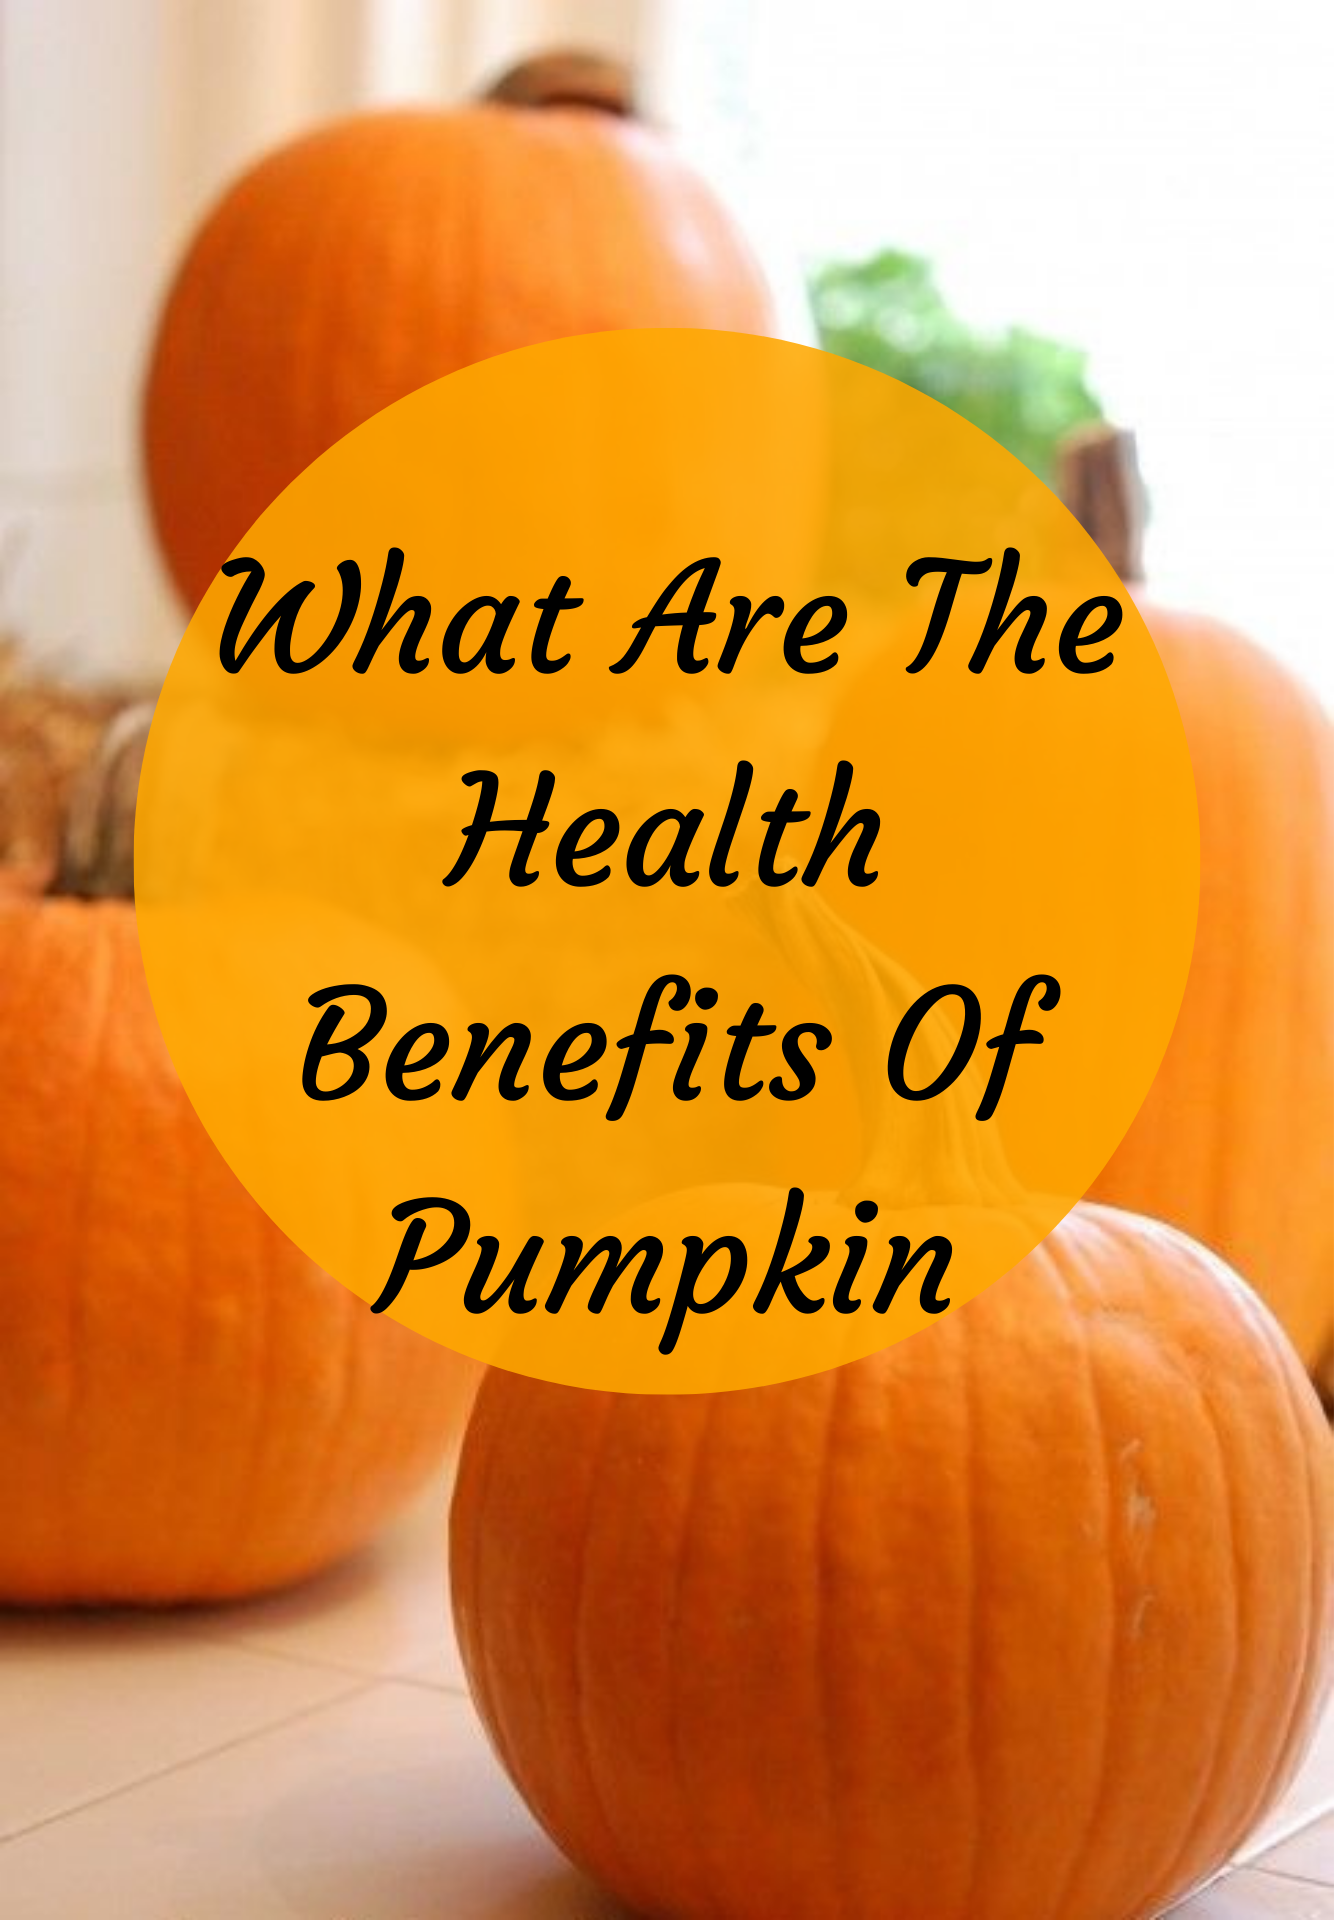 Pumpkins are an amazing source of vitamin A, an anti-aging nutrient that jump-starts your skin's cel...